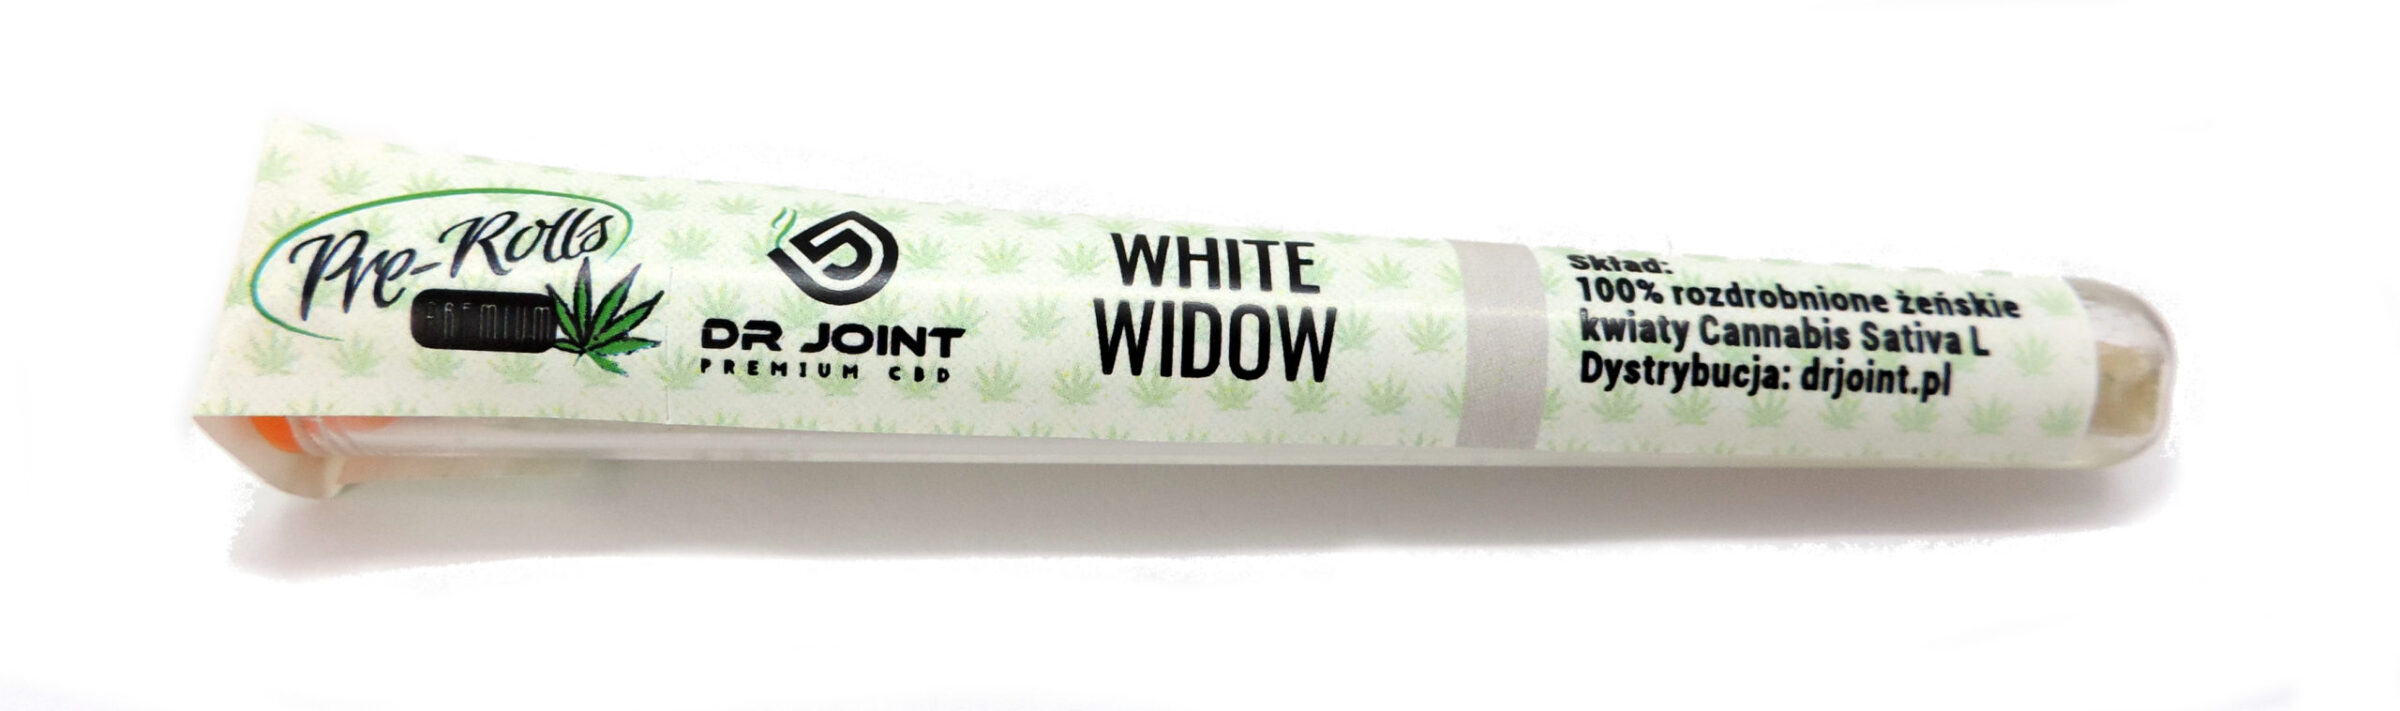 Pre-rolls CBD joint White Widow